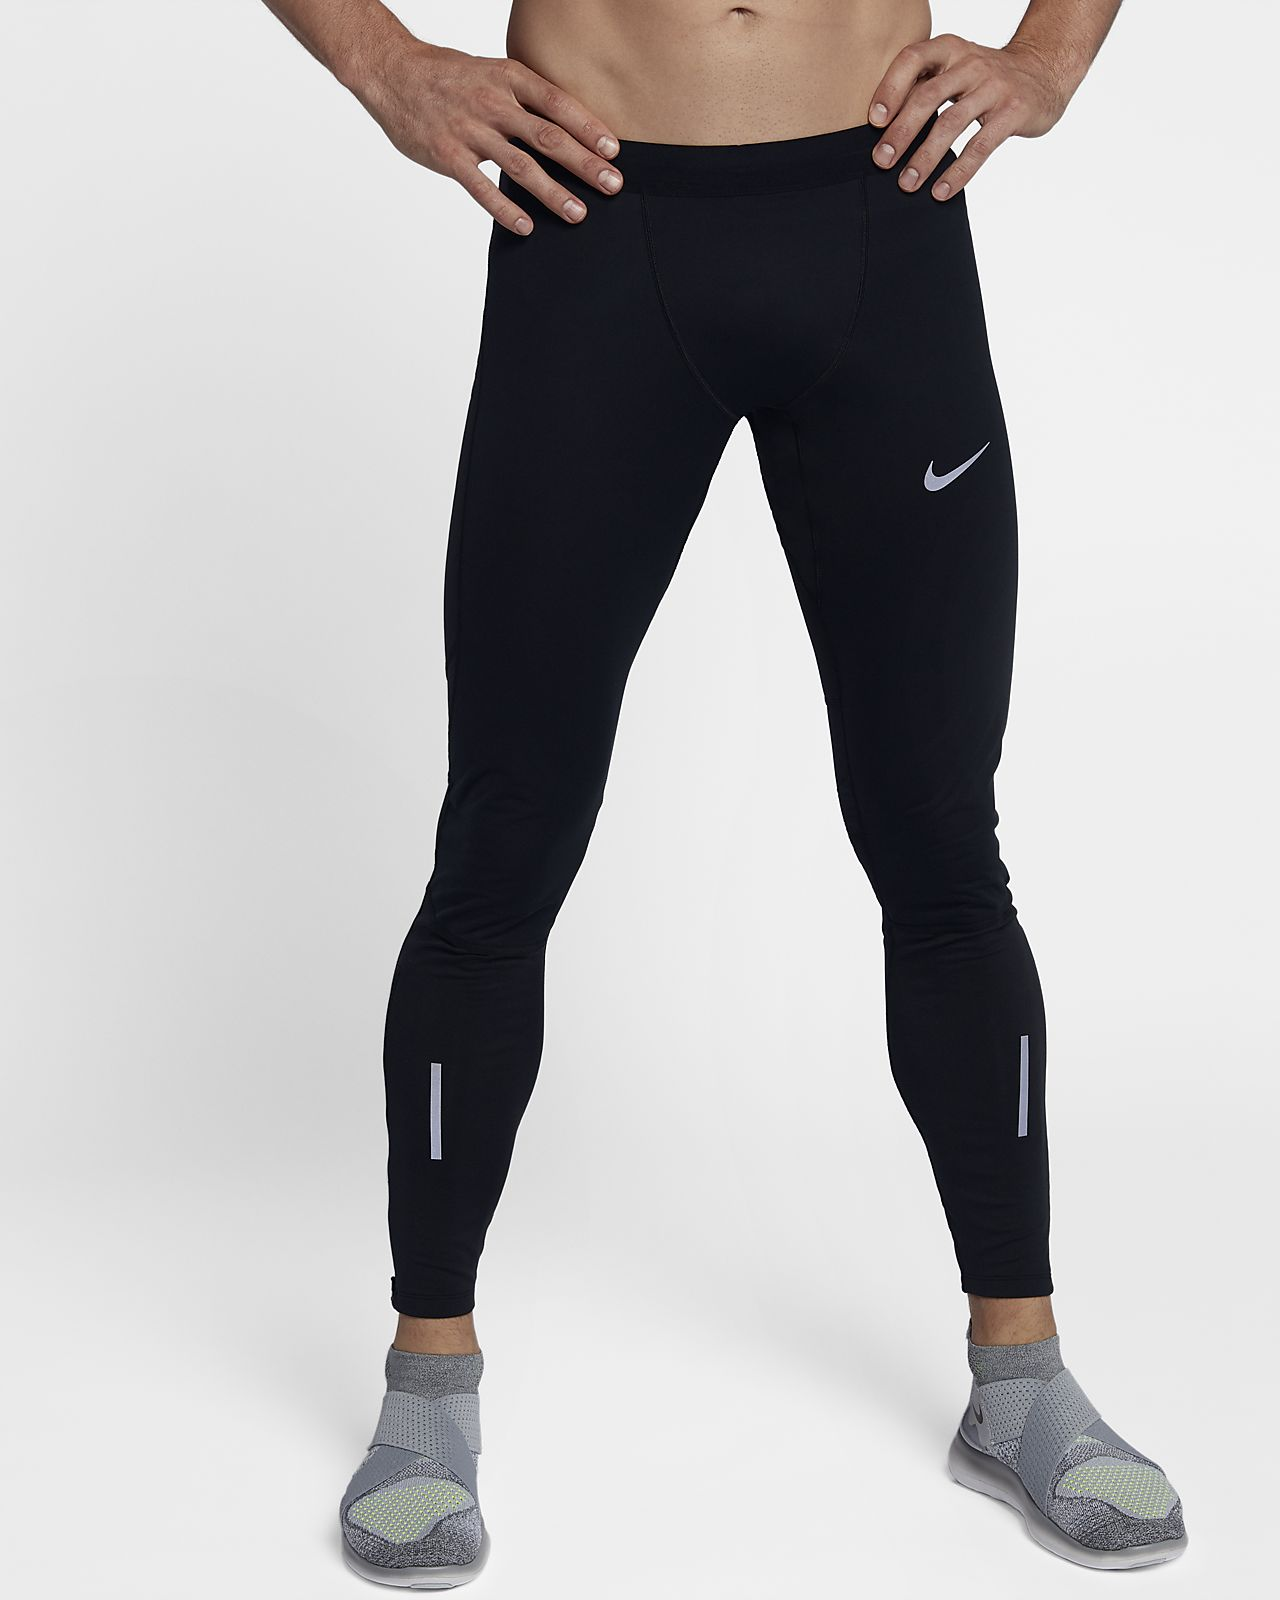 buy online 631bf a7704 ... Mallas de running de 76,5 cm para hombre Nike Shield Tech